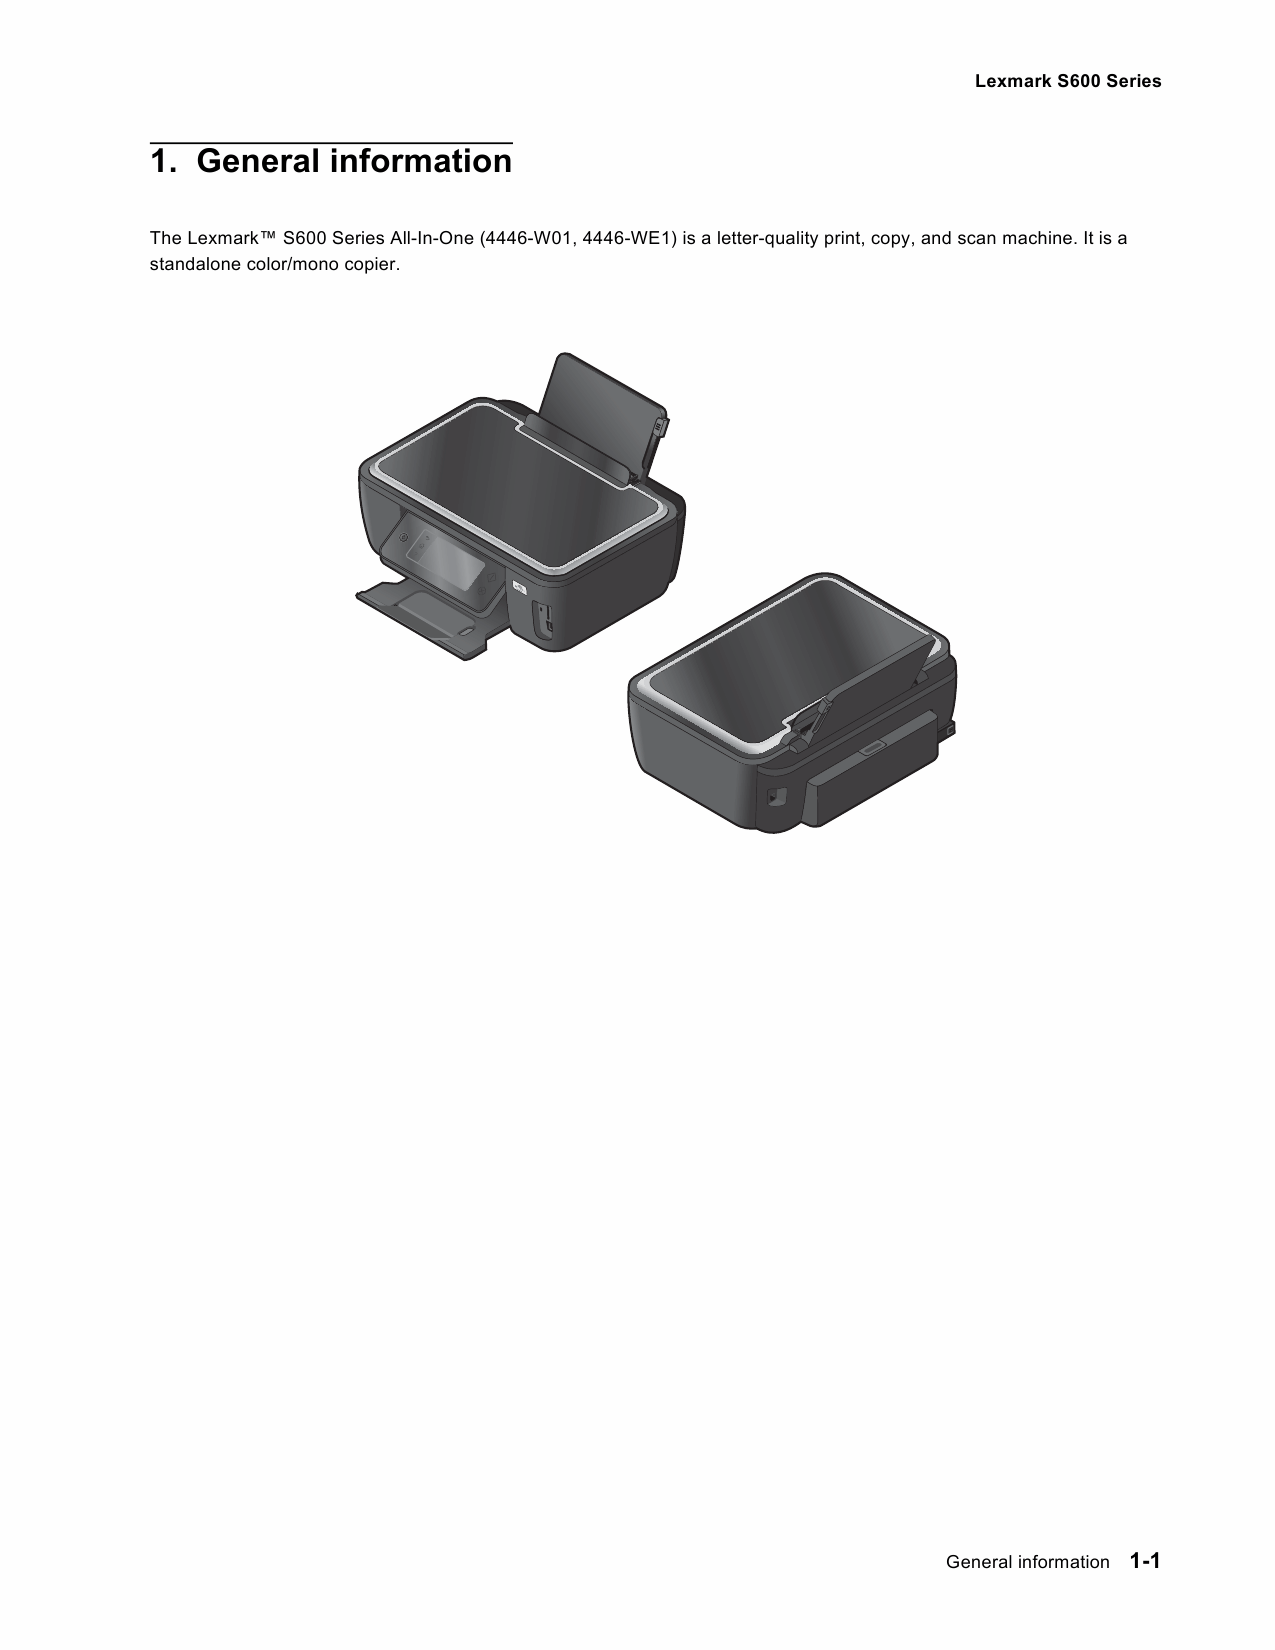 Lexmark All-In-One S600 4446 Service Manual-2